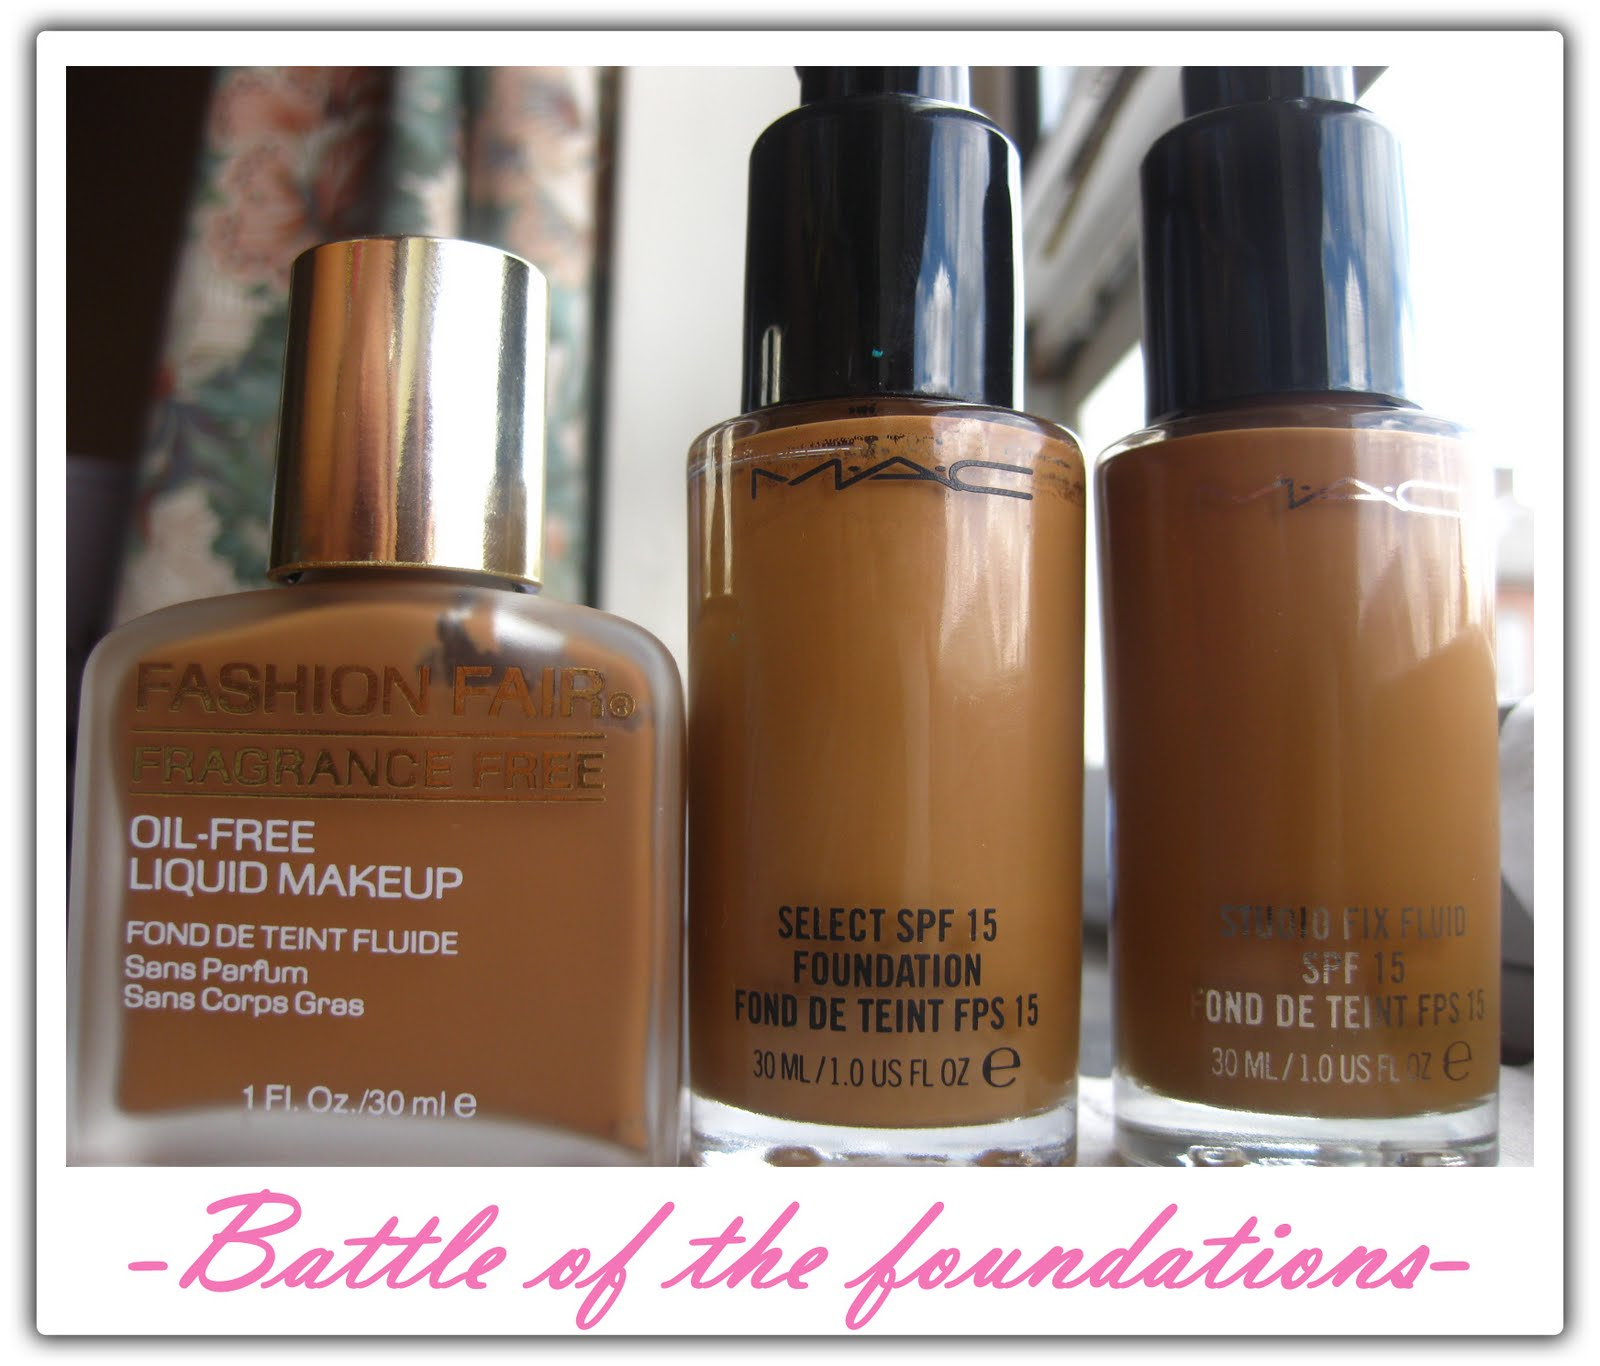 Fashion Fair Foundation Swatches of the Fashion Fair liquid